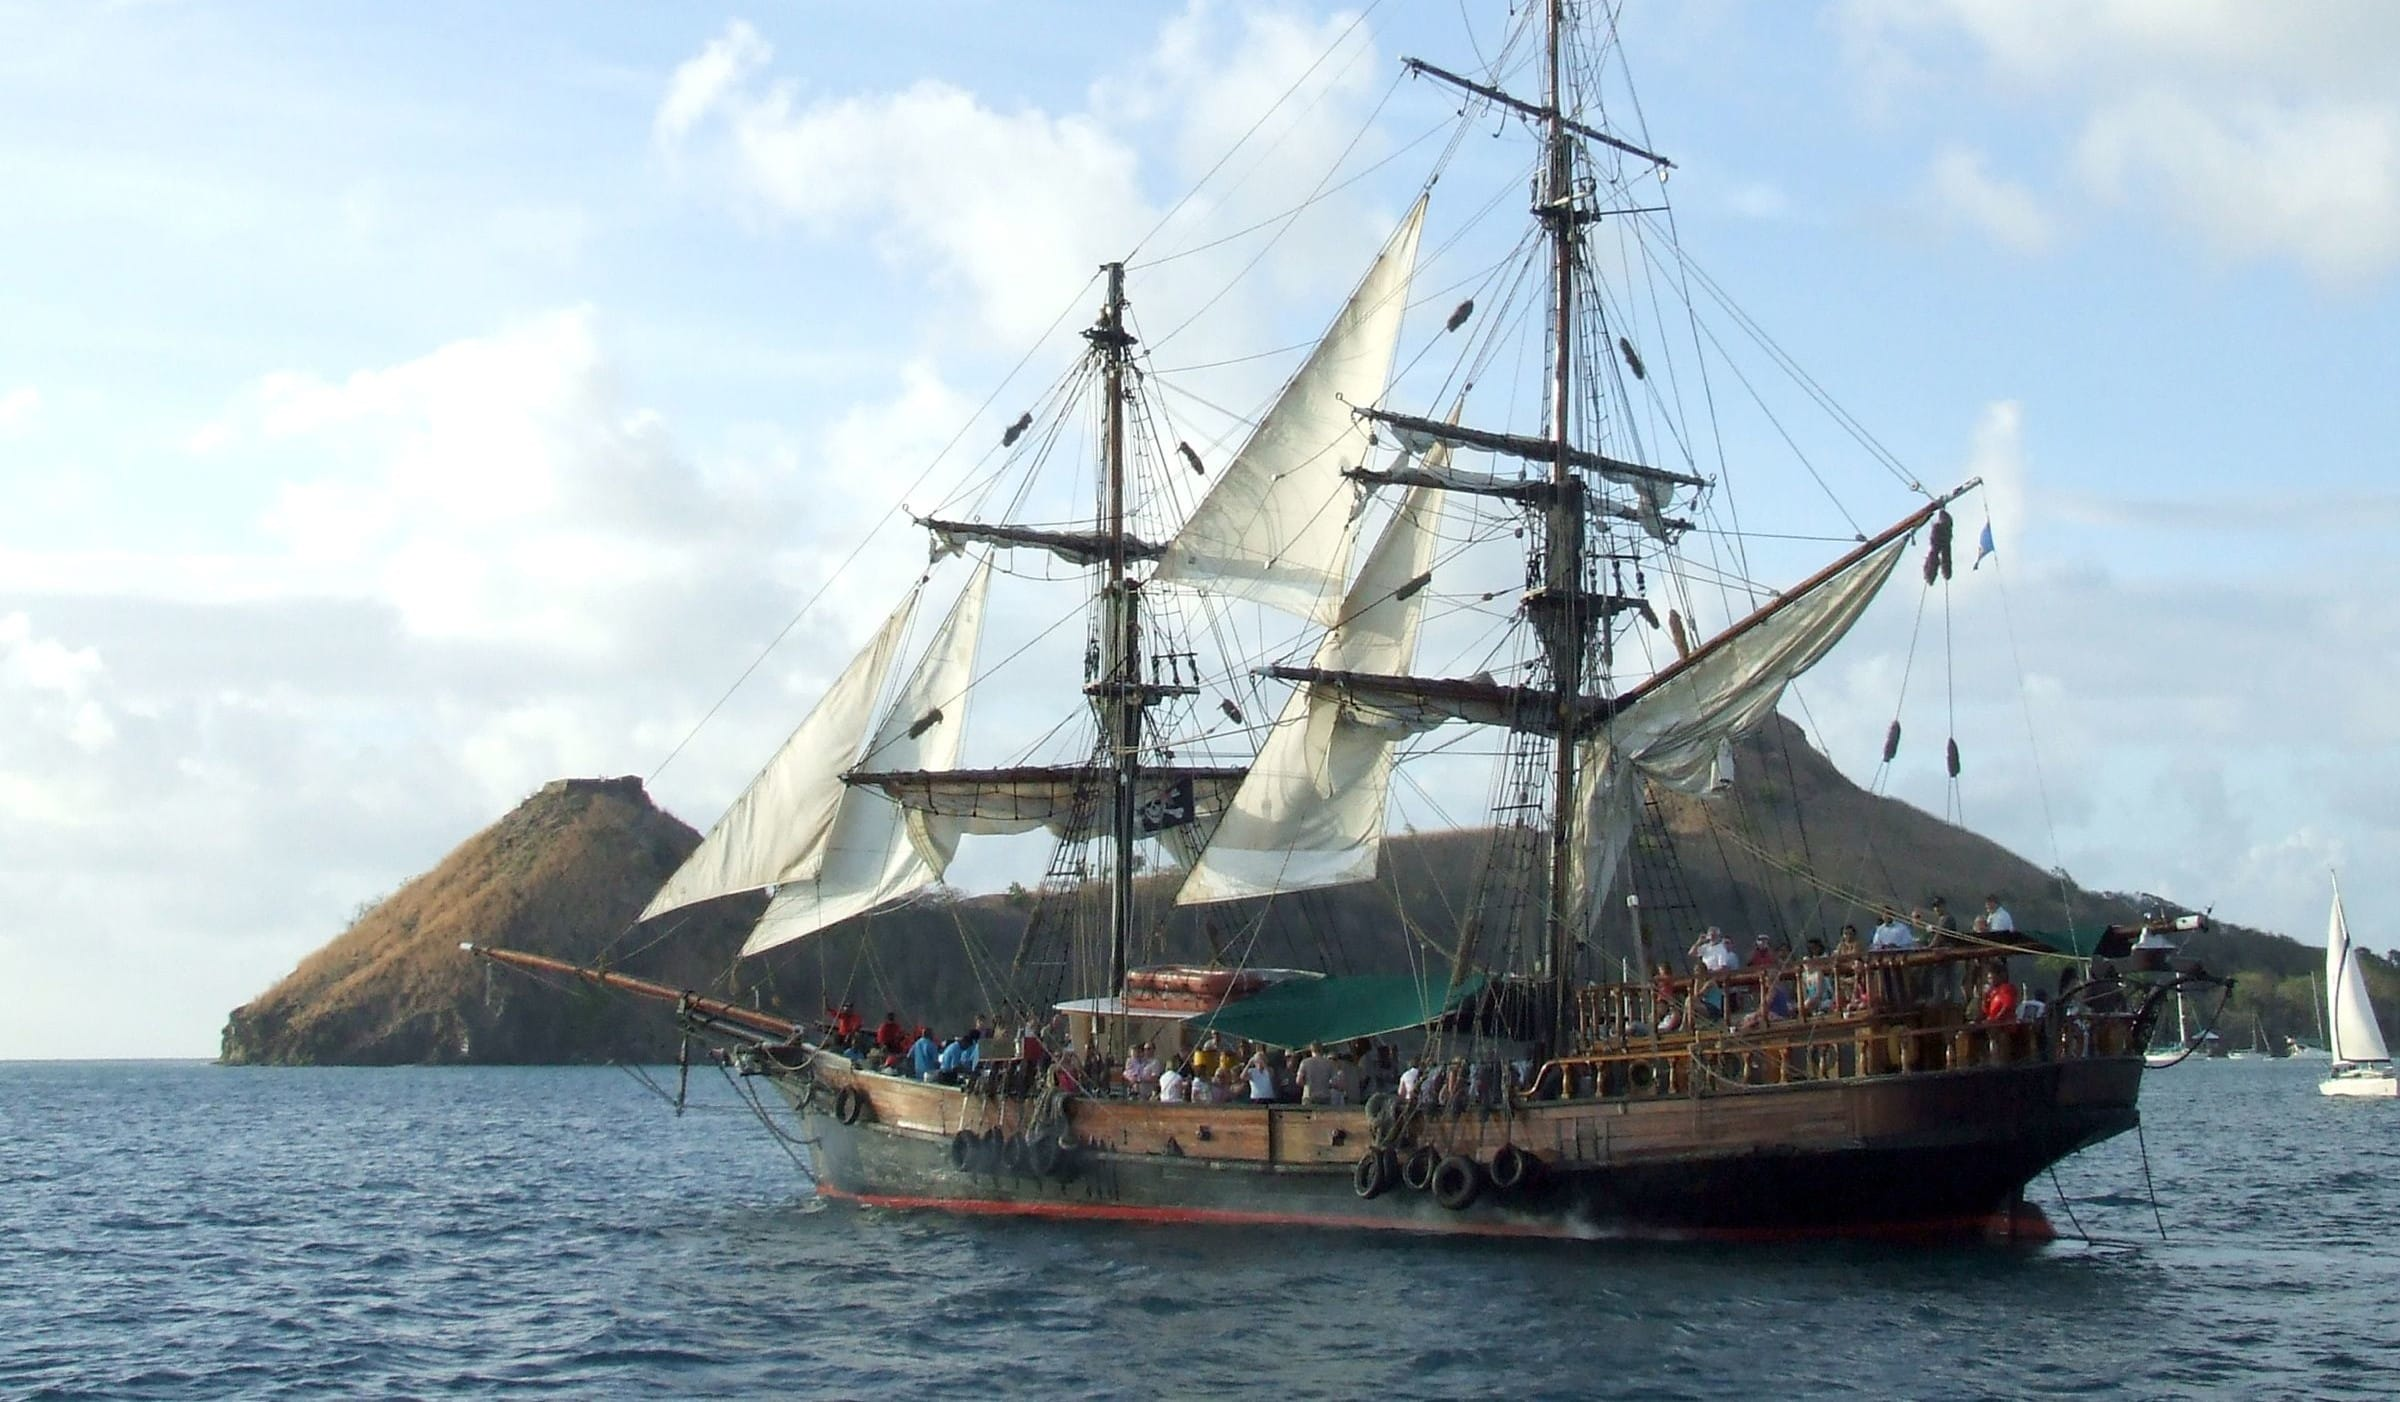 Uncommon Attraction The Brig Unicorn Pirate Ship St Lucia St Vincent